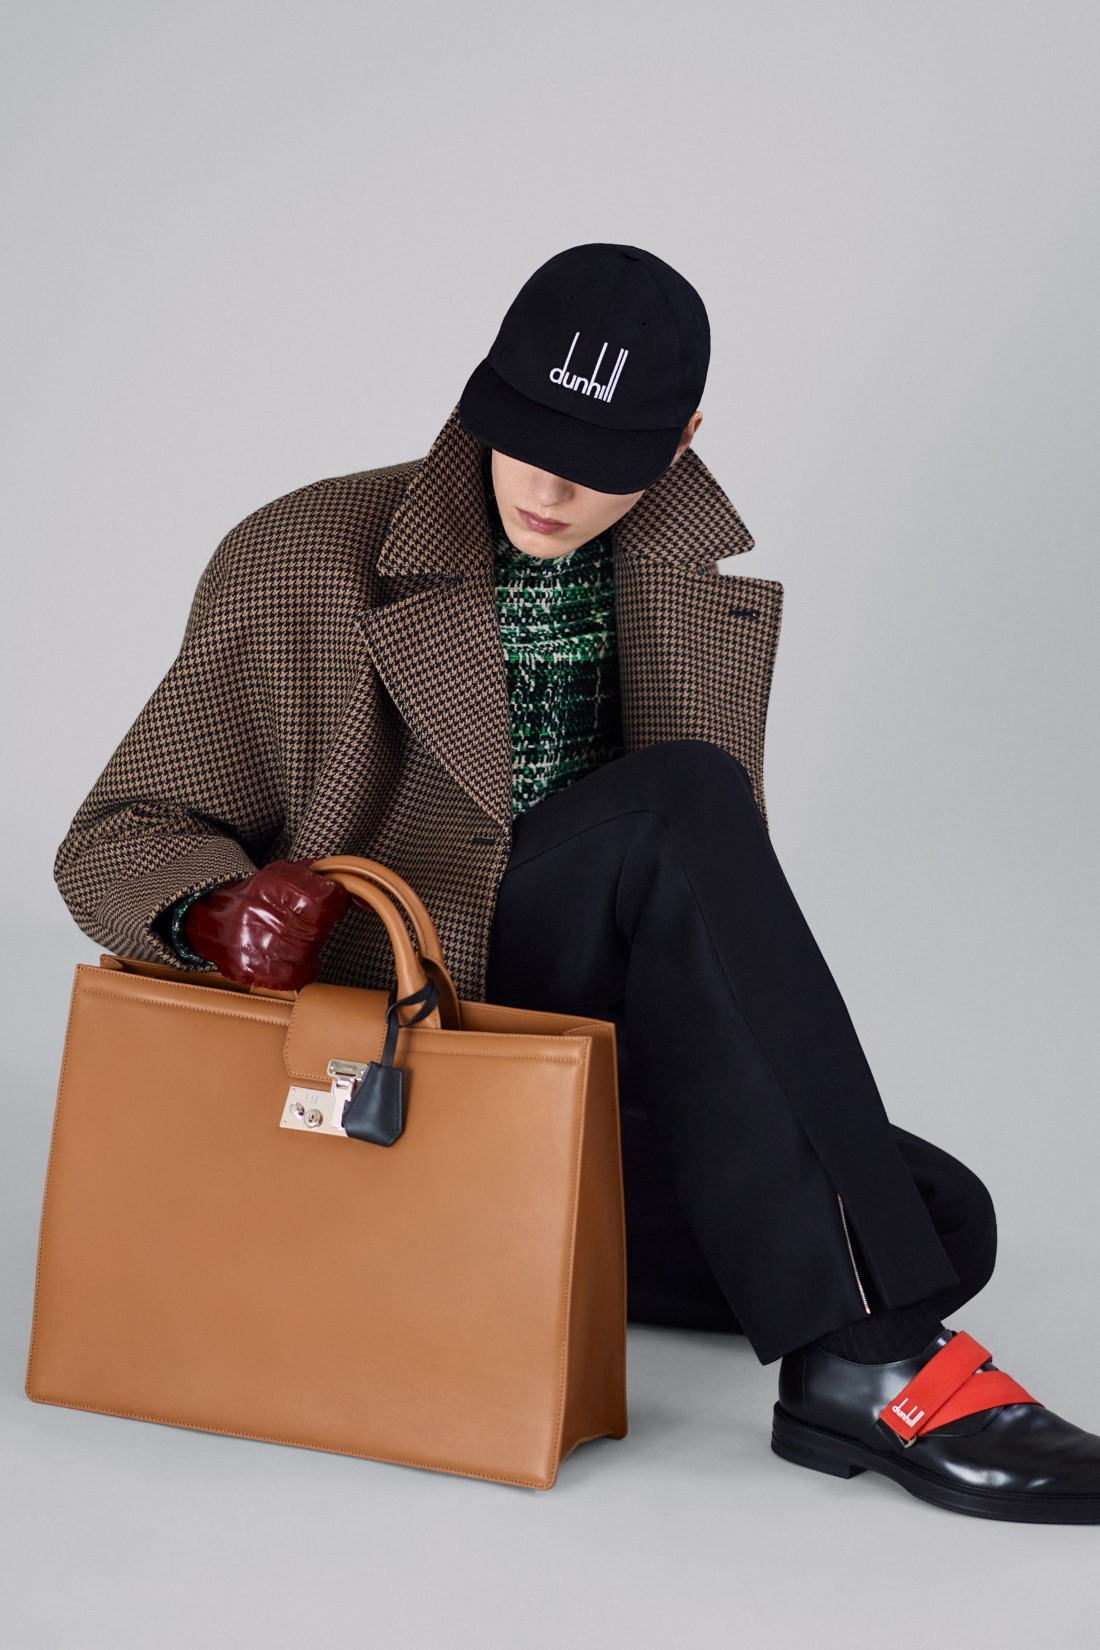 dunhill - Automne-Hiver 2021-2022 - London Fashion Week